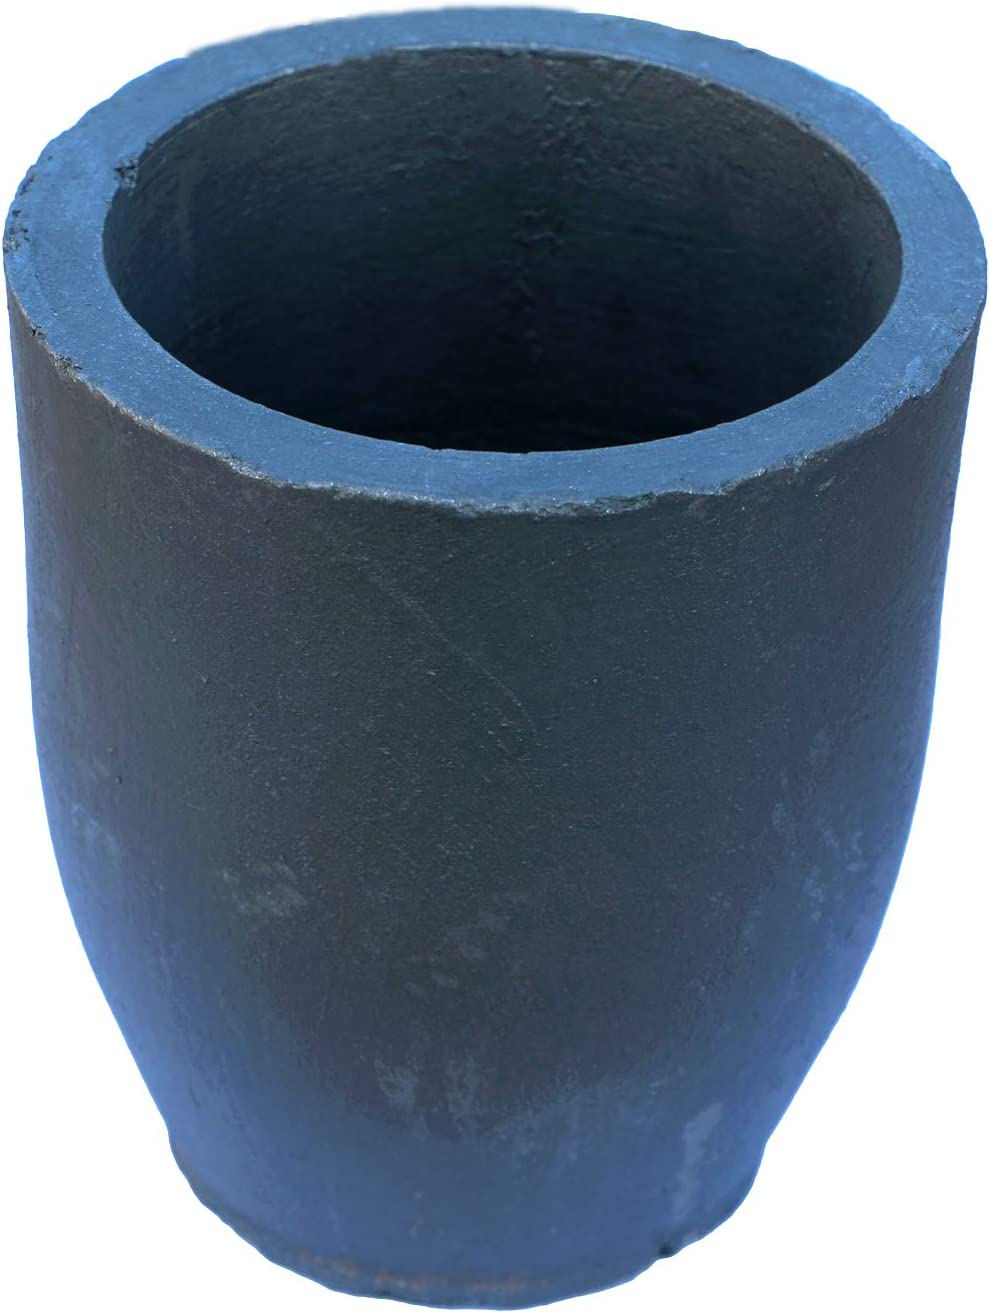 Aluminum 5KG Foundry Clay Graphite Crucibles Propane Furnace Torch Melting Casting Refining for Gold Silver Copper 5KG